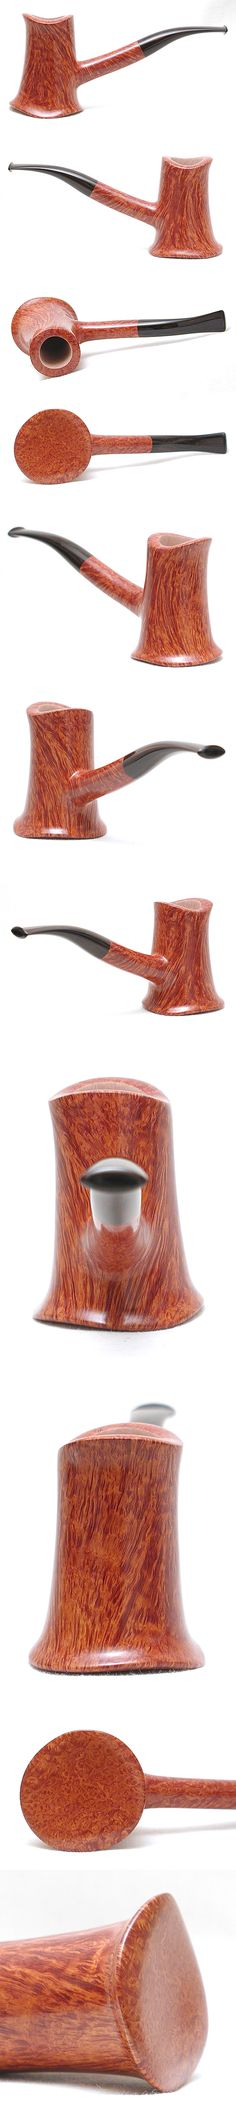 Will Purdy - Hand Crafted Briar Pipes